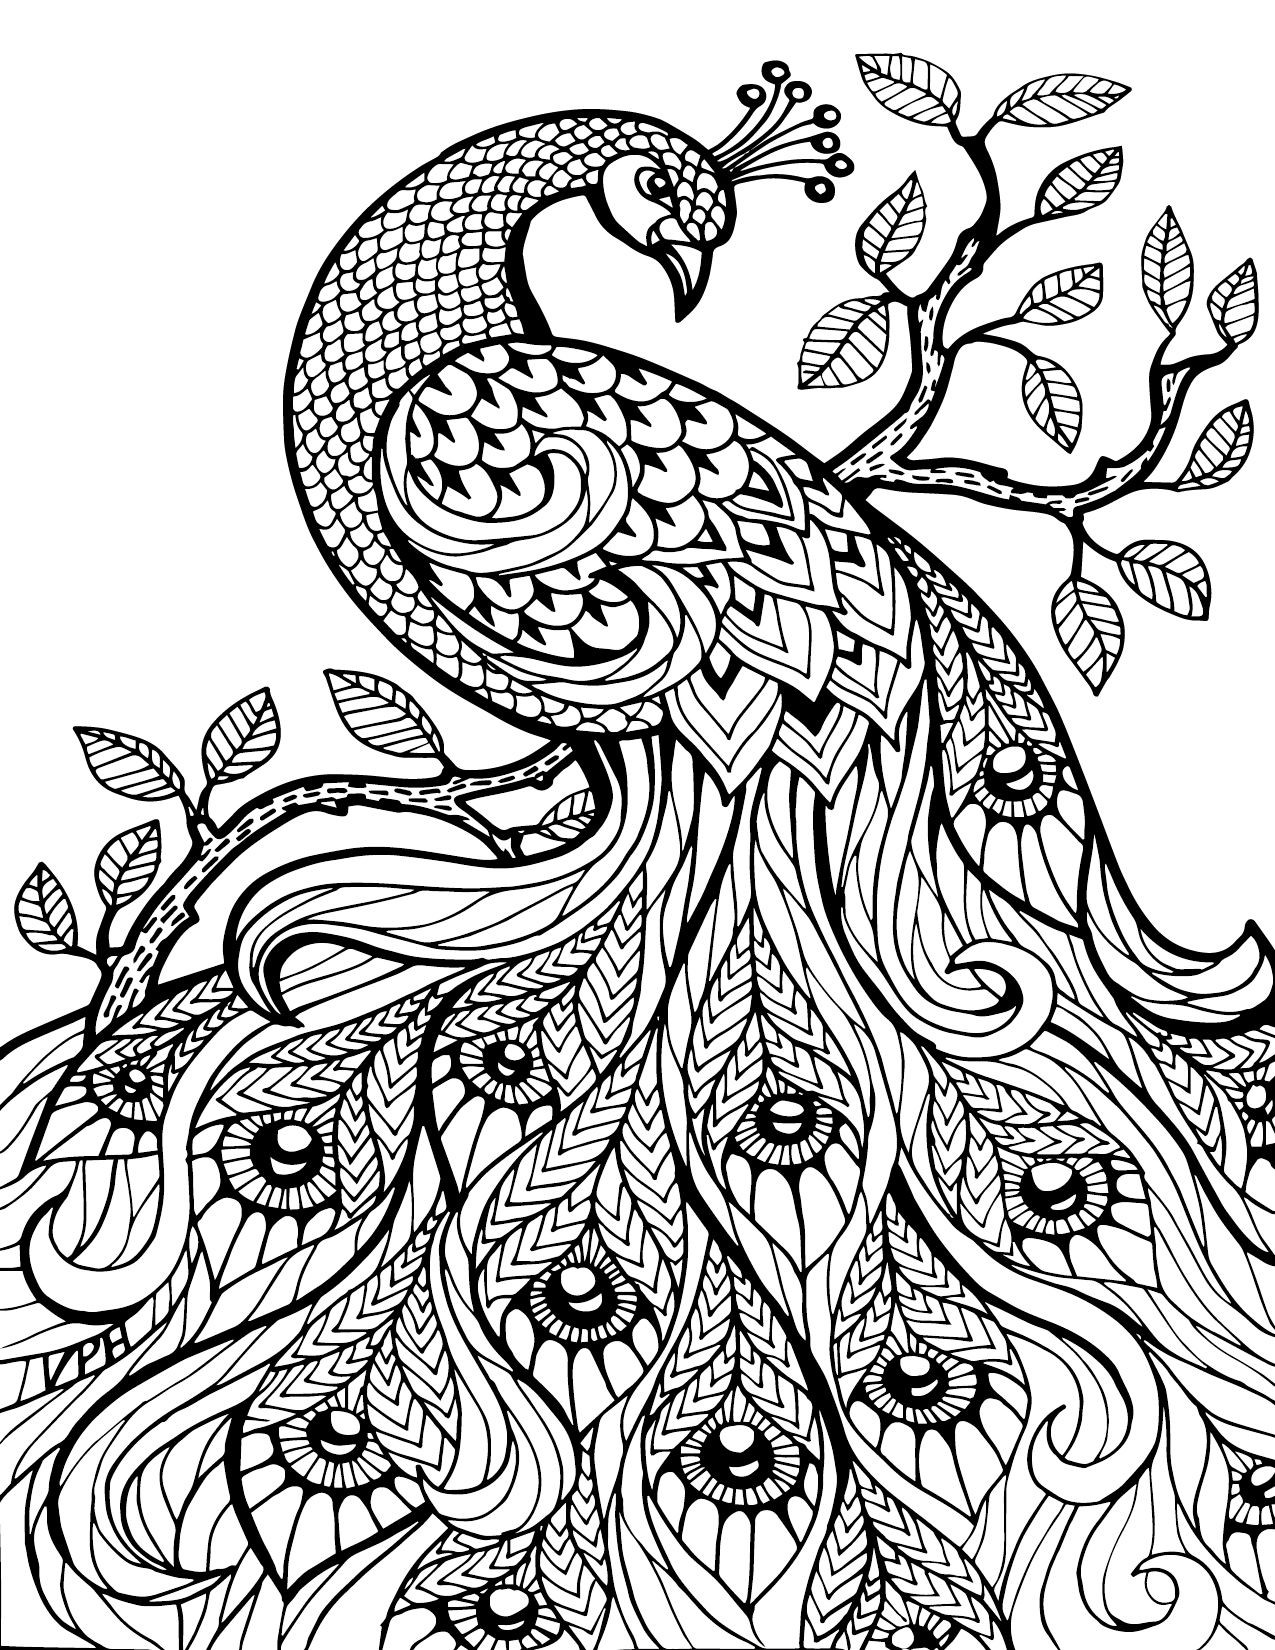 1275x1650 Feather Coloring Page Beautiful Rose Humming Bird Feather Coloring